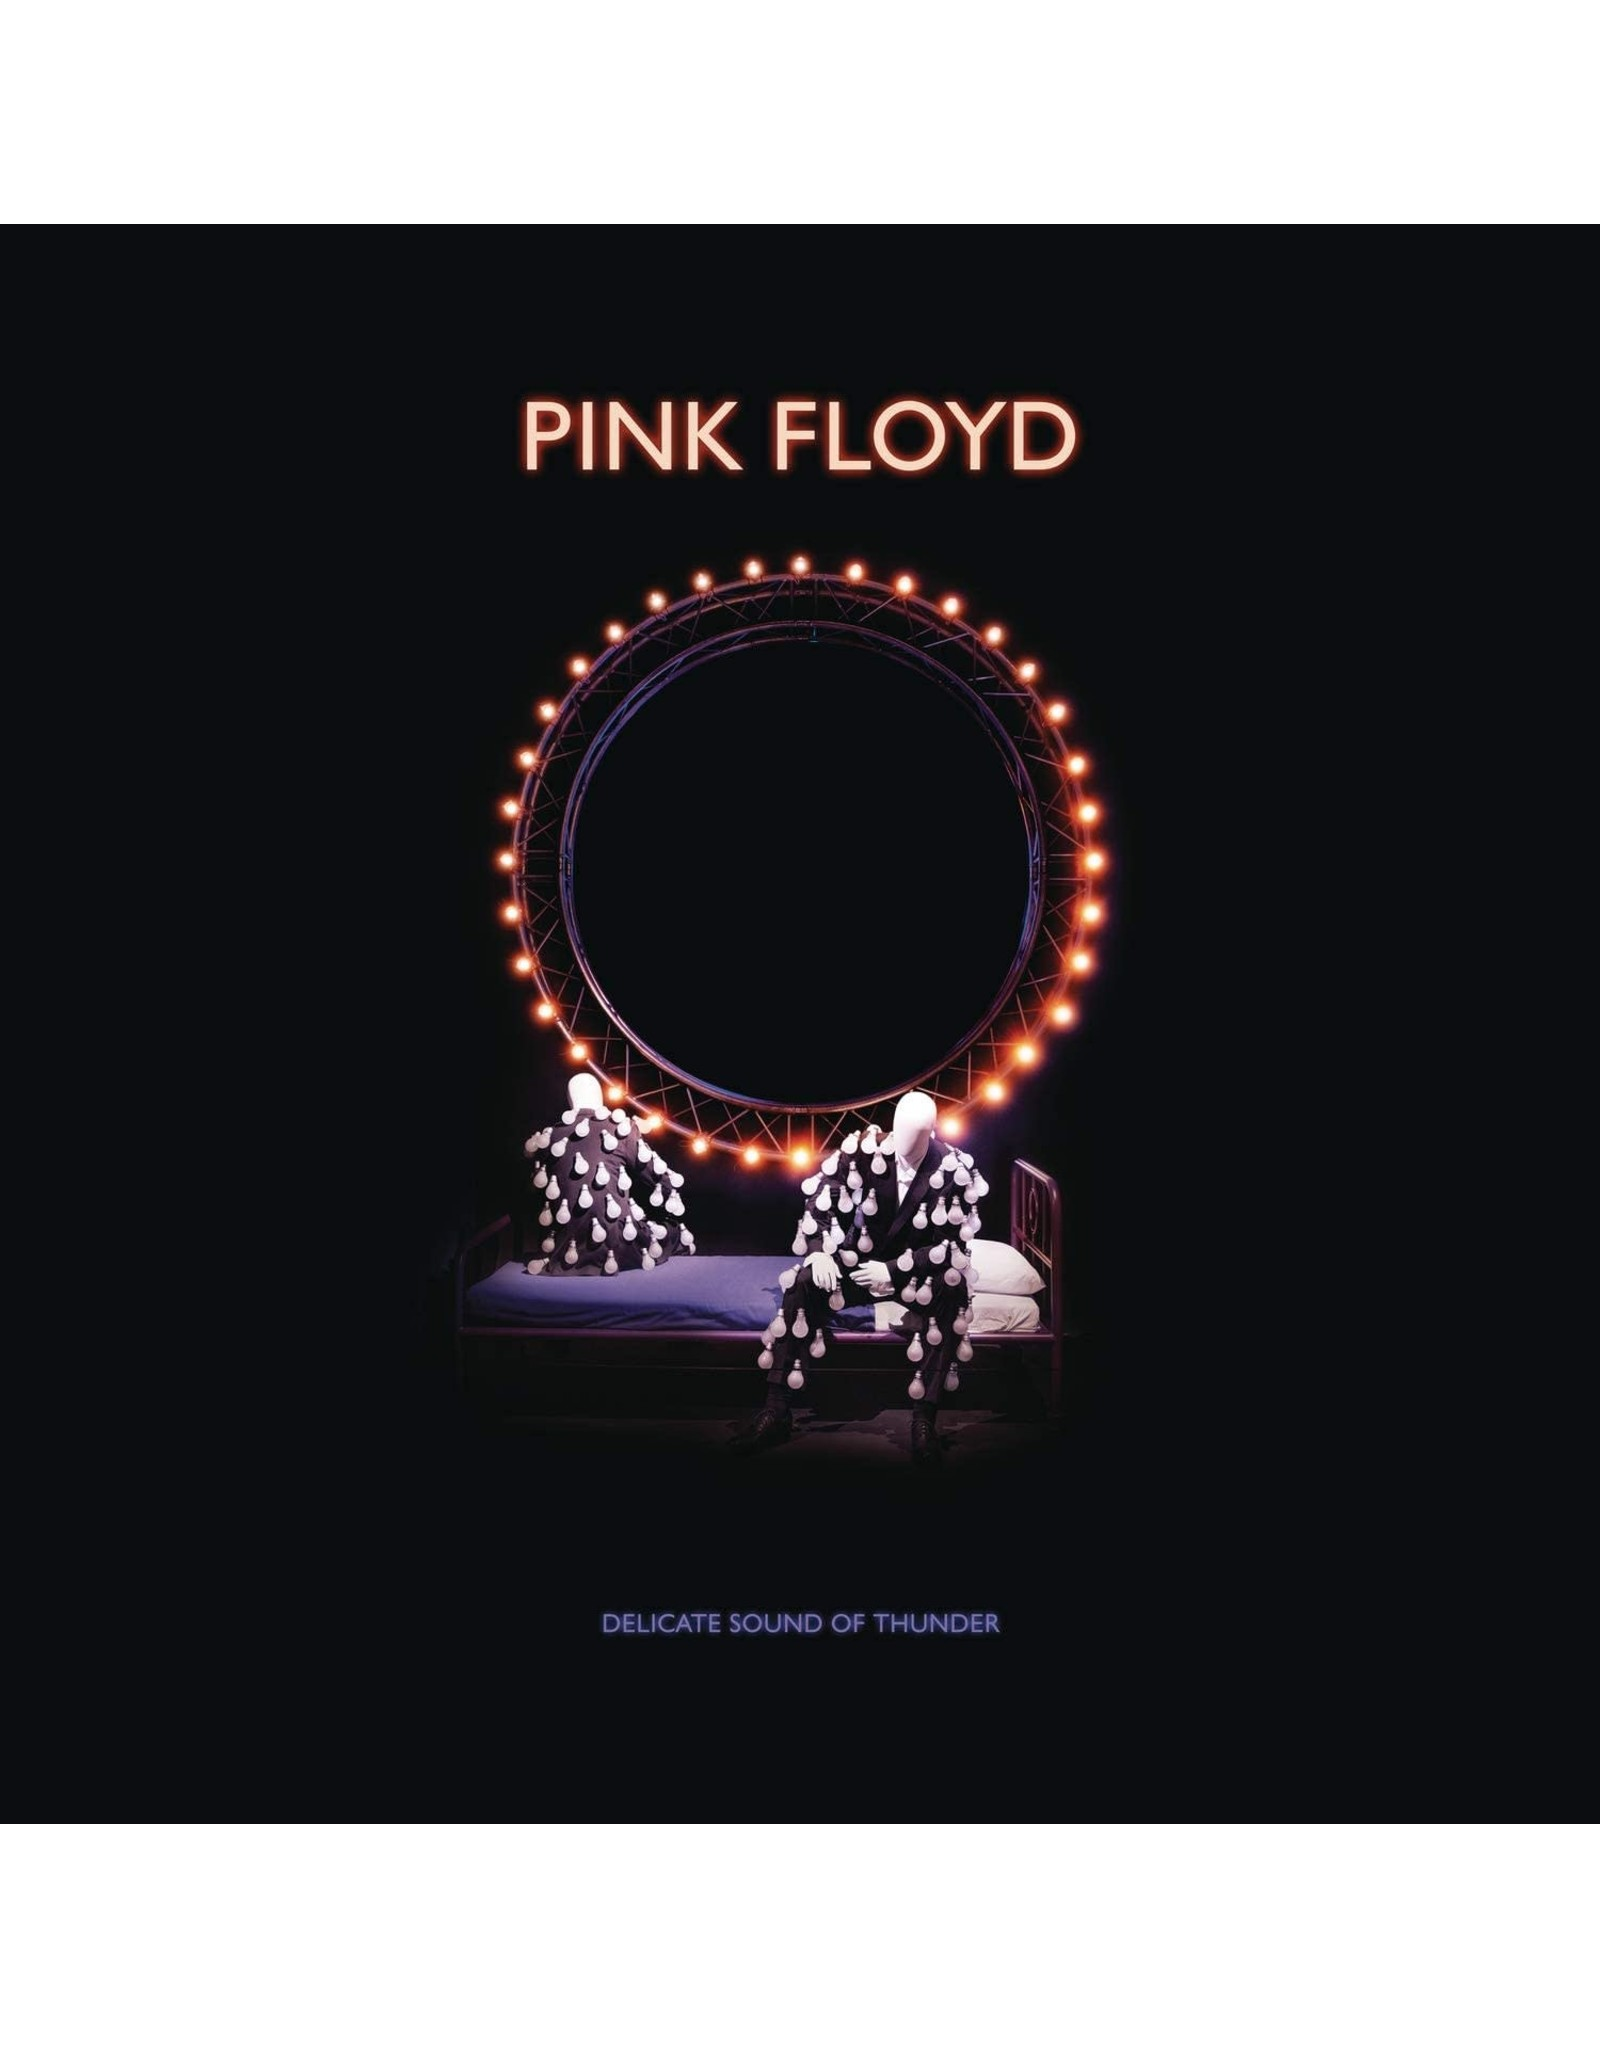 Pink Floyd - Delicate Sound of Thunder 2CD Blu-Ray/DVD